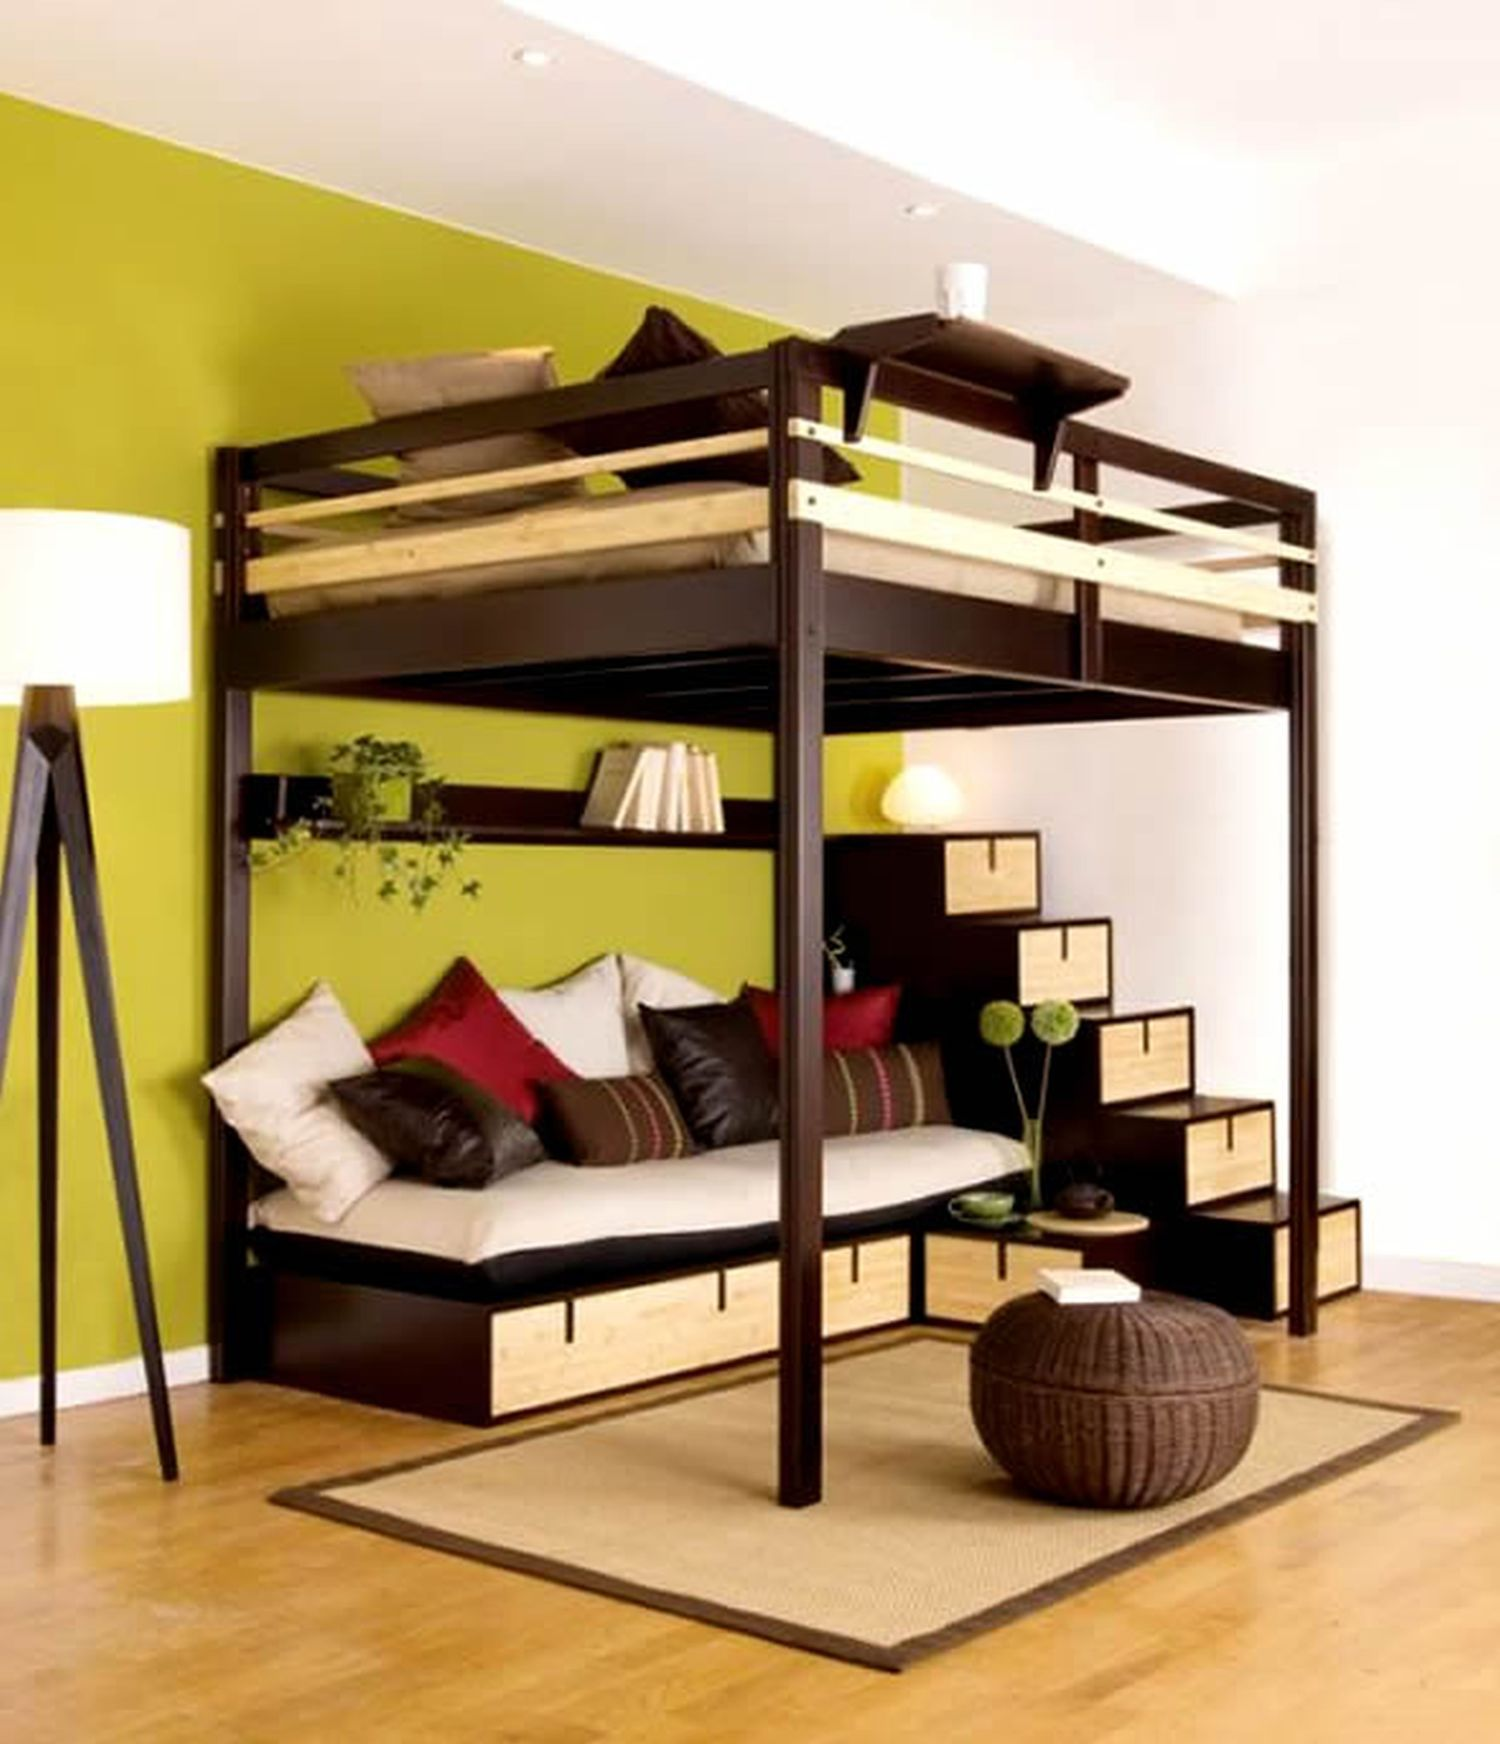 S Bedroom Bunk Bed For Ager Wood With Futon Modern Cool Beds Ideas Agers Stairs